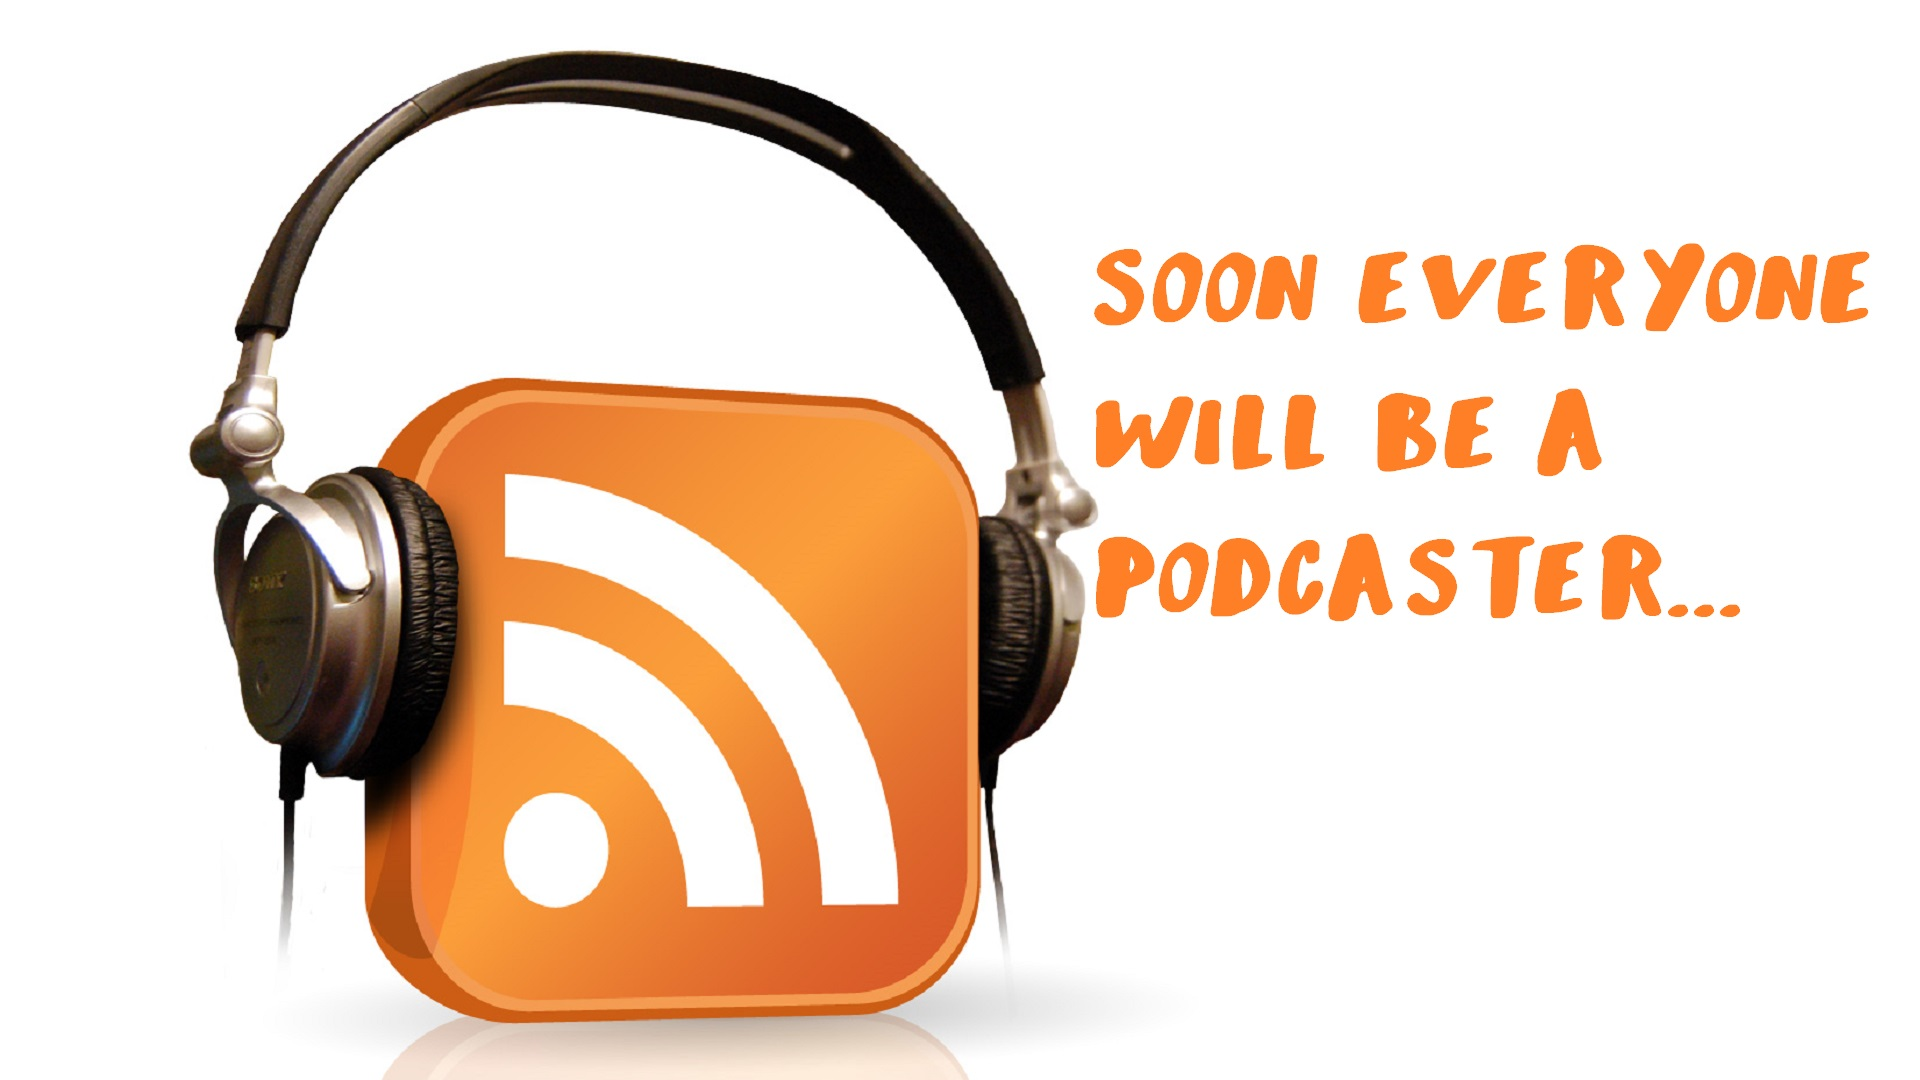 Soon everyone will be a Podcaster...